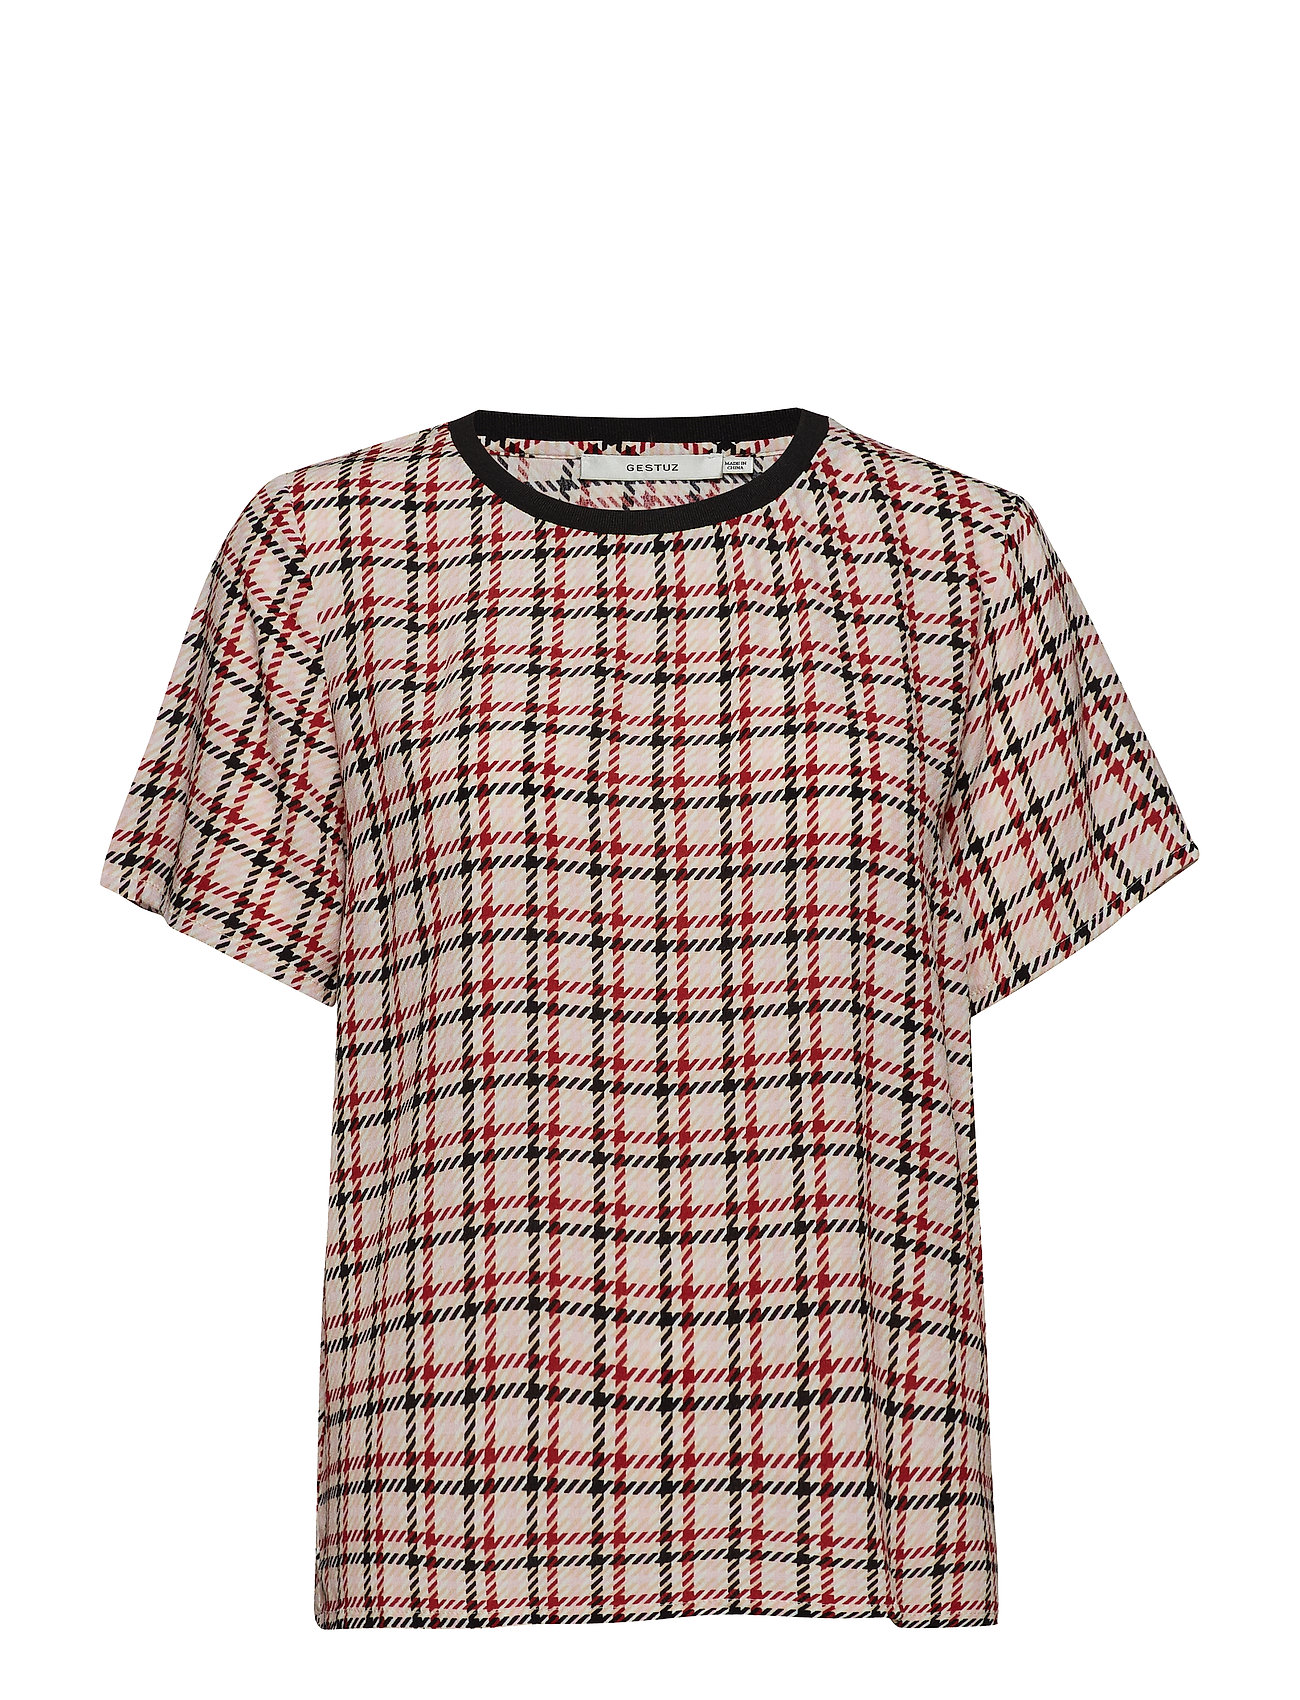 Gestuz Genova ss top SO19 - RED/PINK/WHITE CHECK